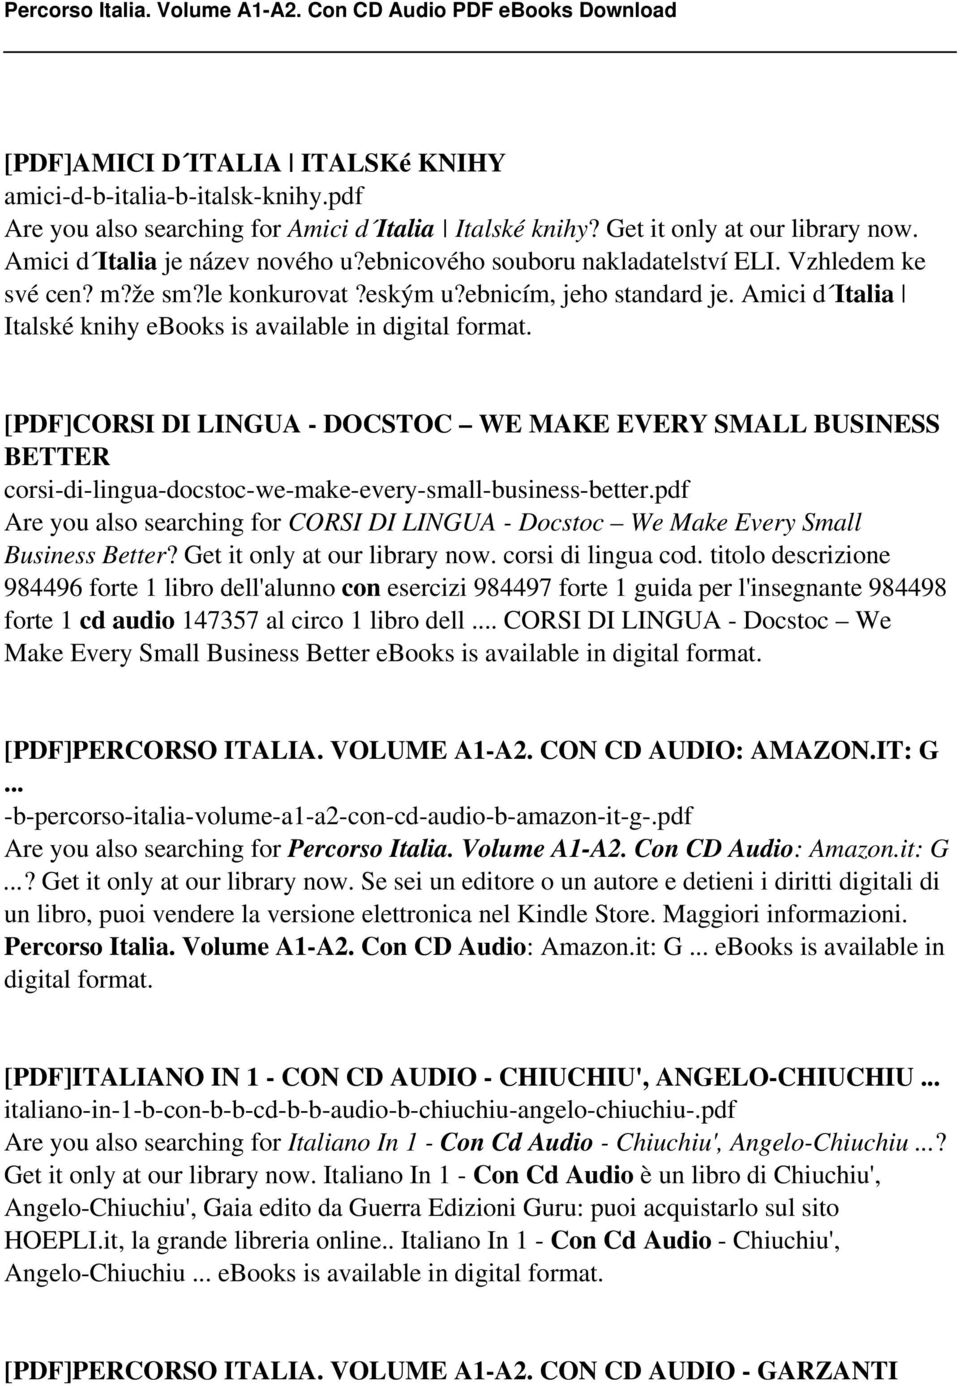 Percorso italia volume a1 a2 con cd audio pdf pdf pdfcorsi di lingua docstoc we make every small business better corsi fandeluxe Gallery